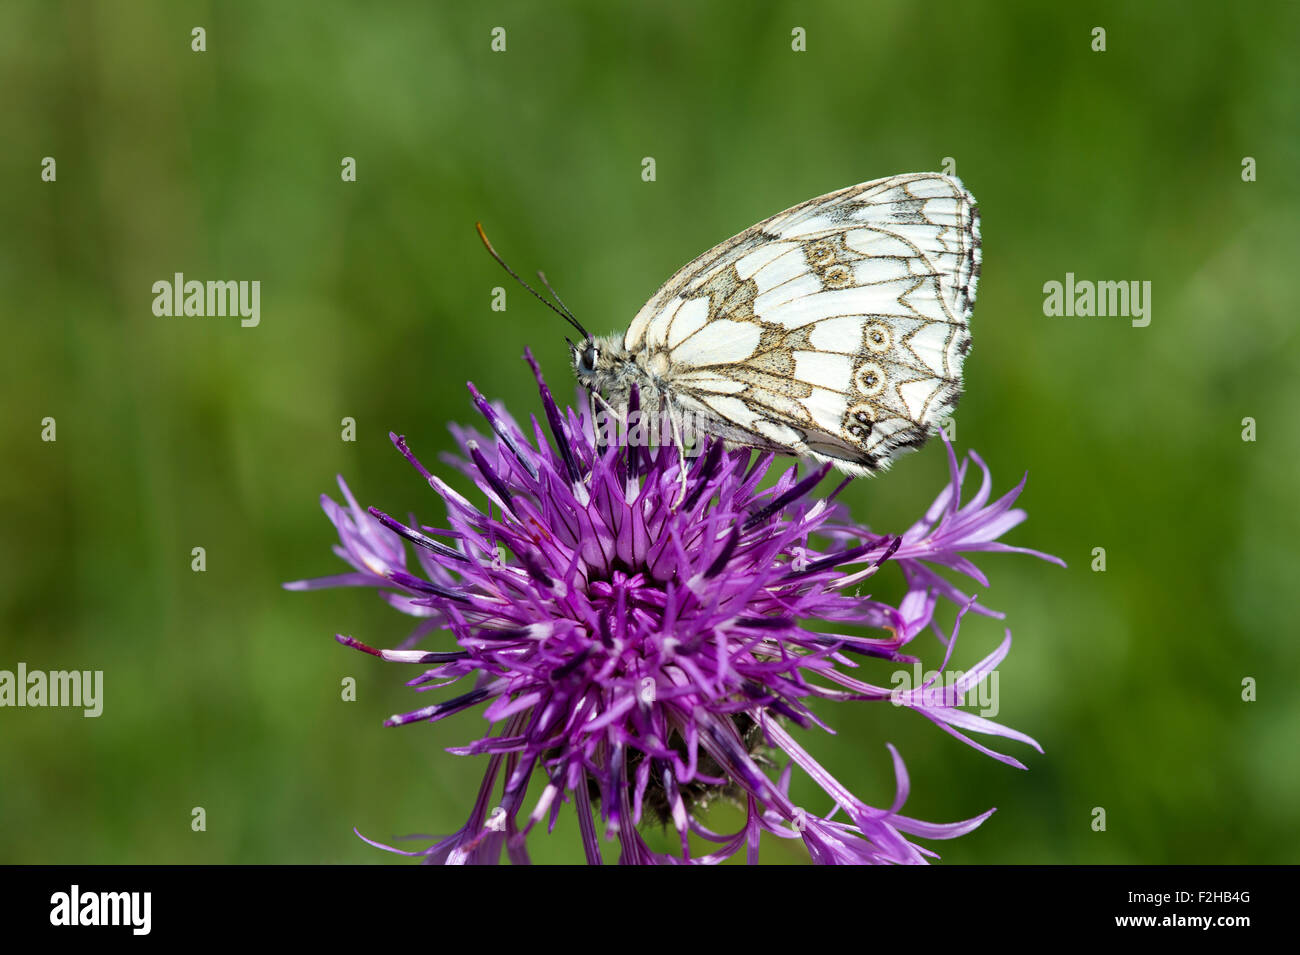 Marbled white butterfly (melanargia galathea) on greater knapweed flower (Centaurea scabiosa), UK - Stock Image